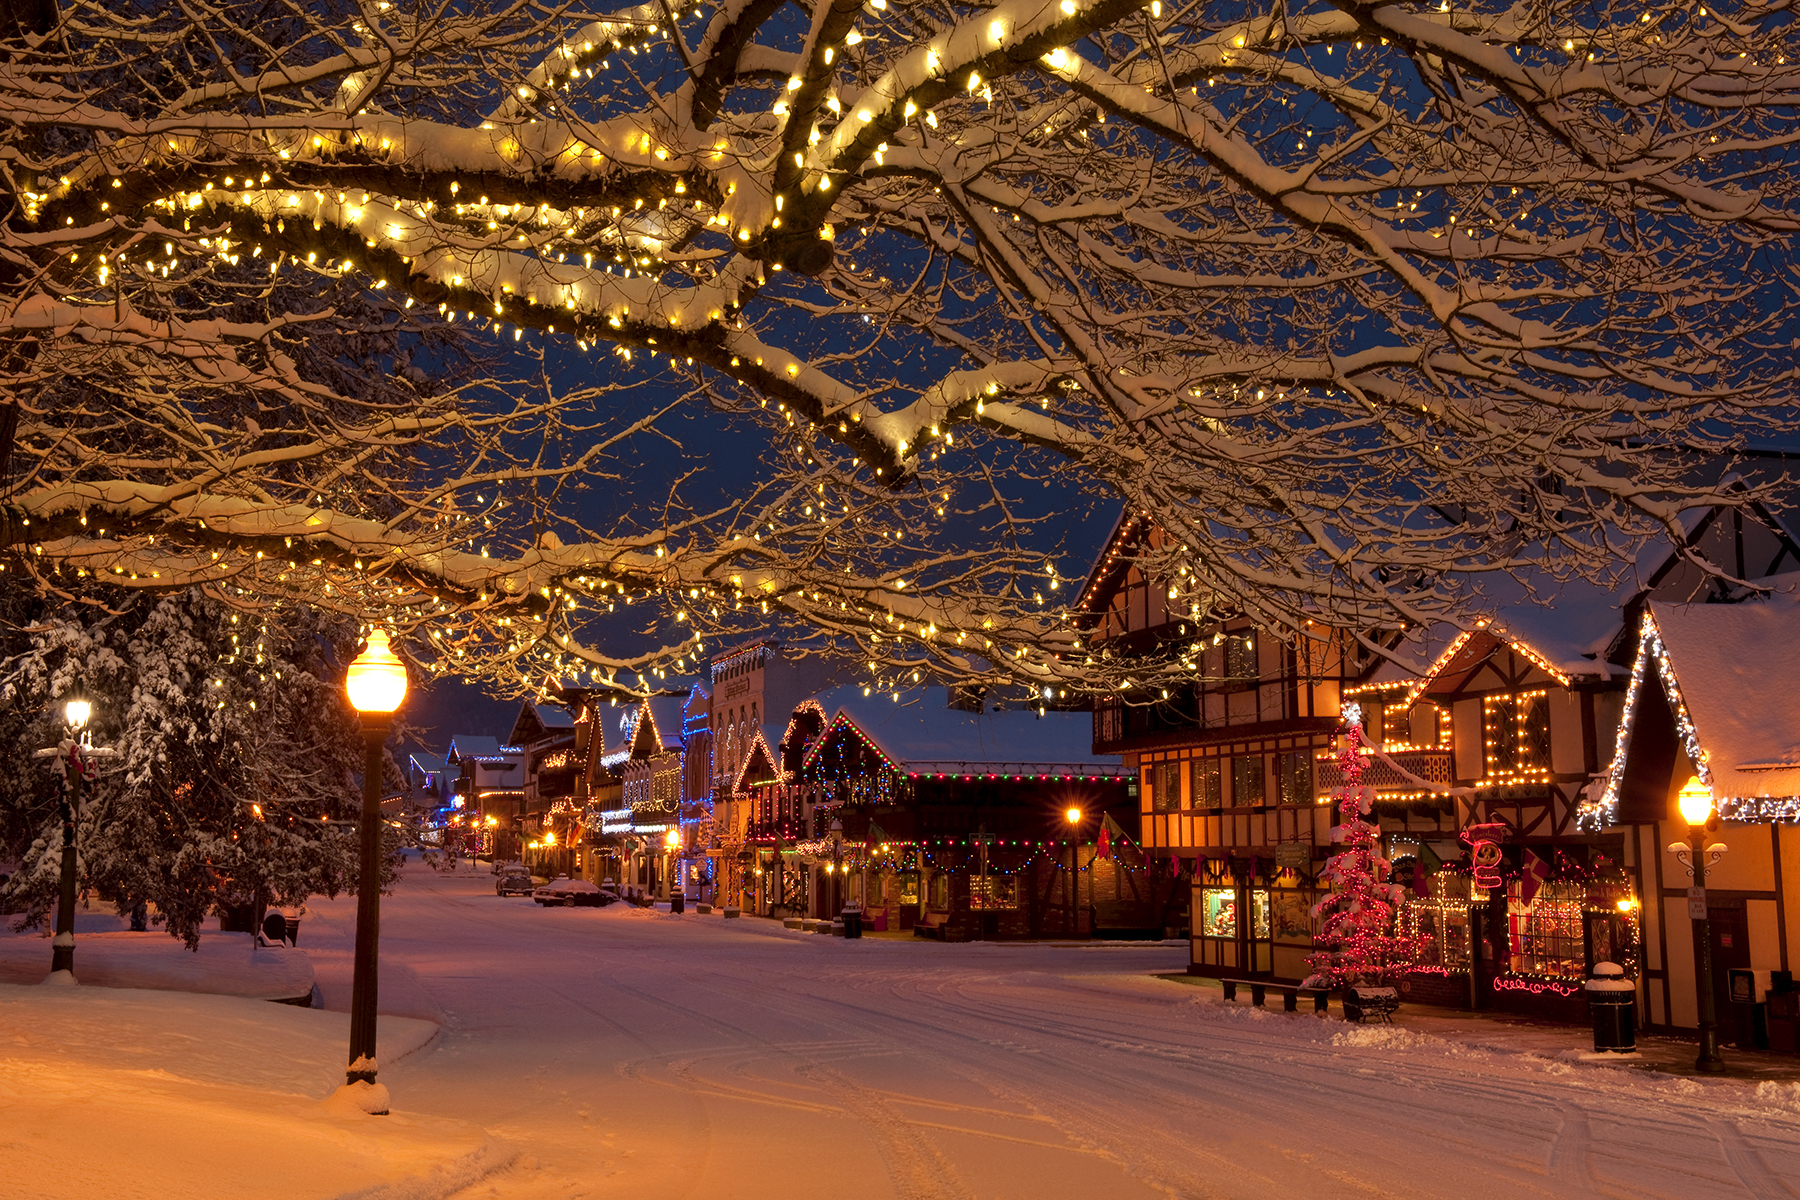 Town street with snow and Christmas lights